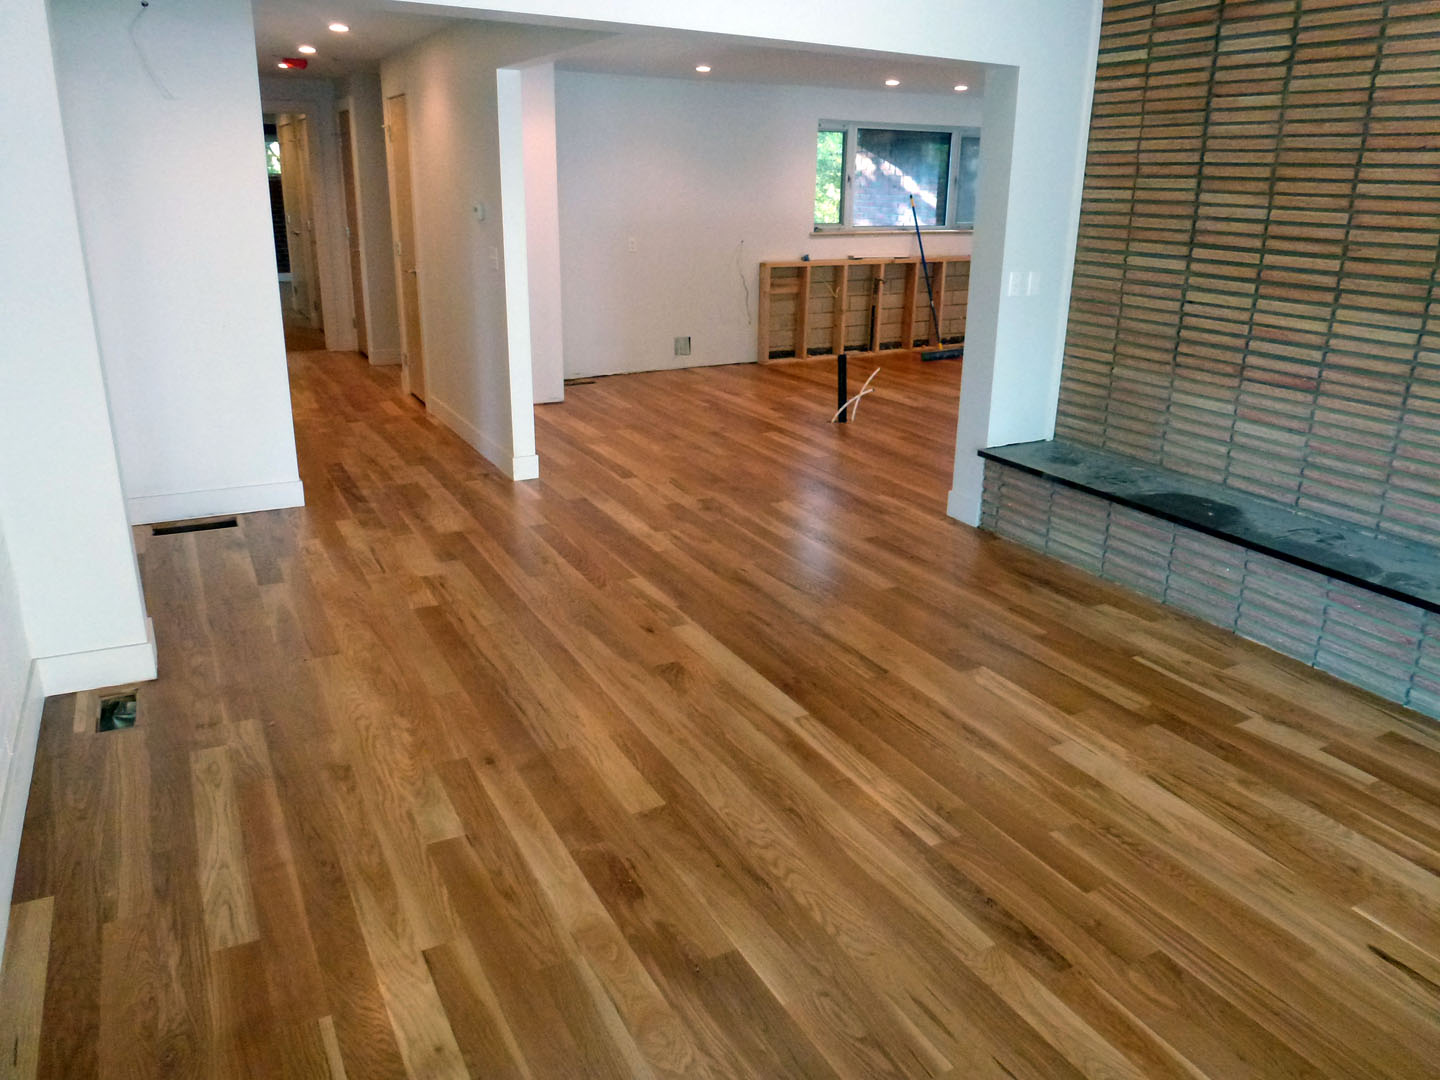 http://www.thebluebook.com/inc/img/qp/71546/red-oak-plank.jpg